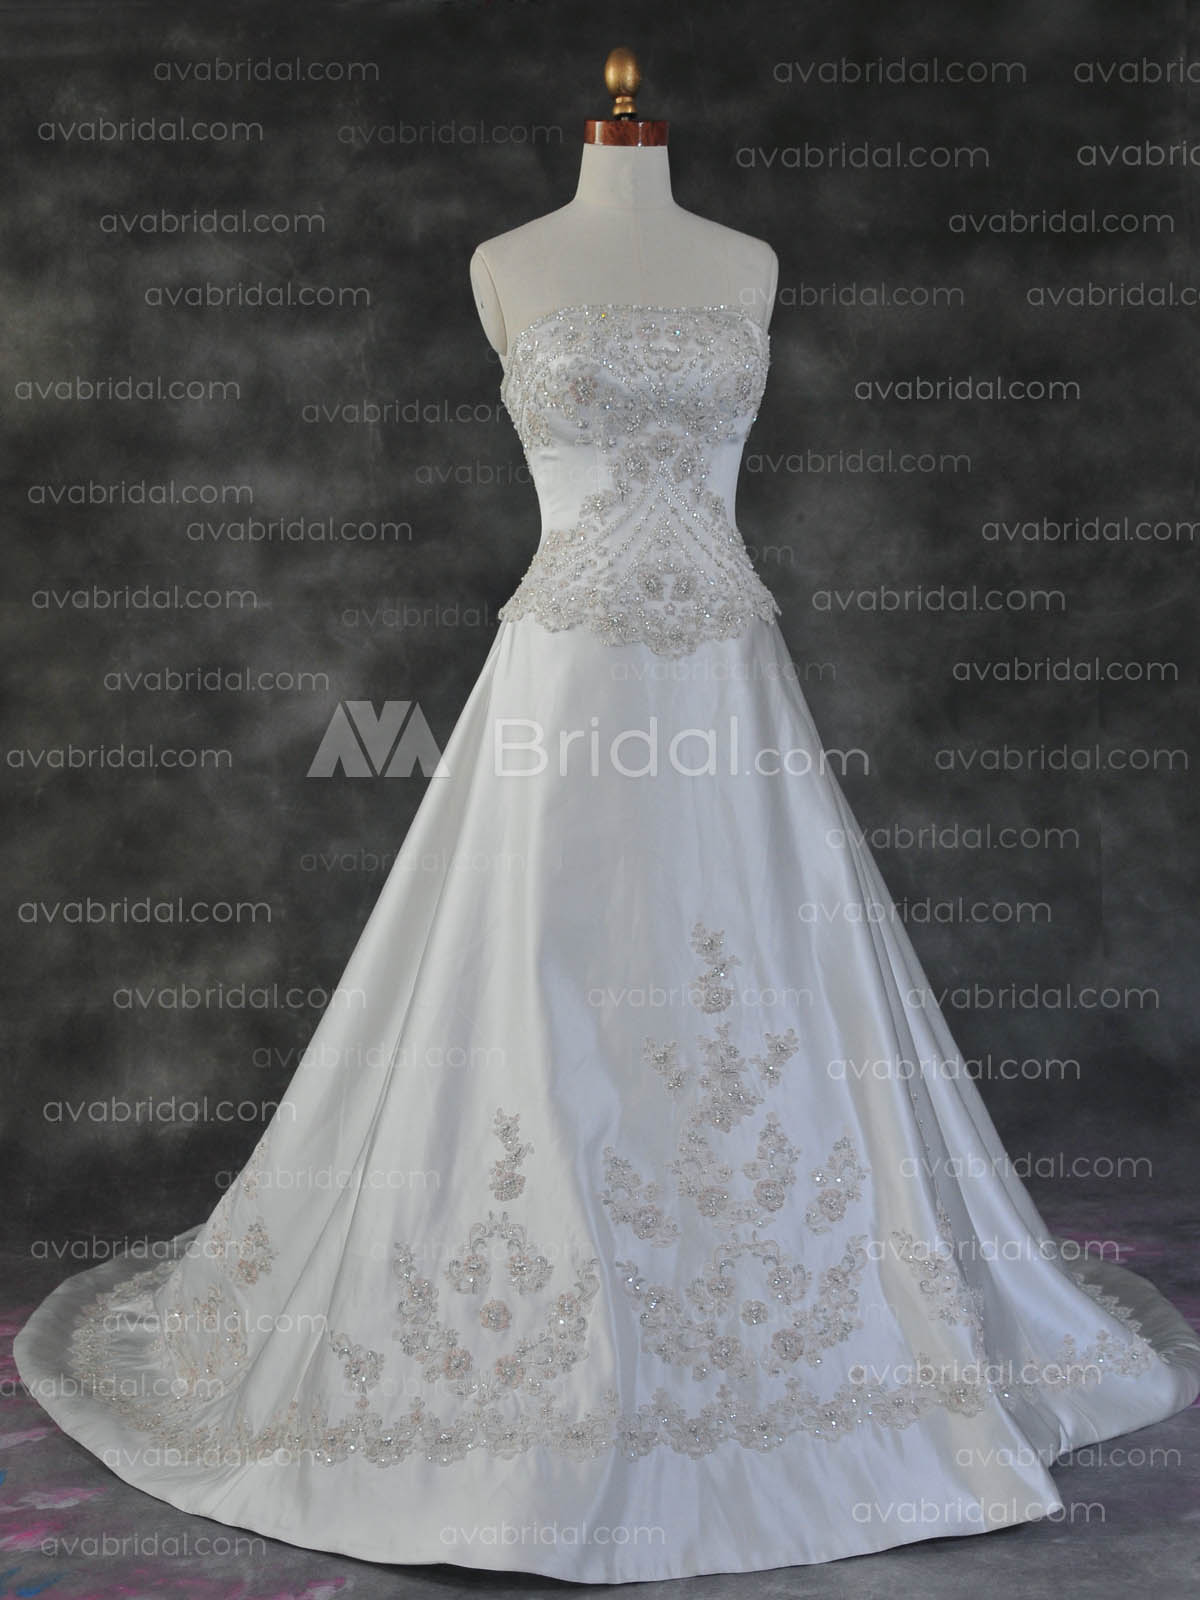 Luxurious Bridal Gown - Giselle - Front